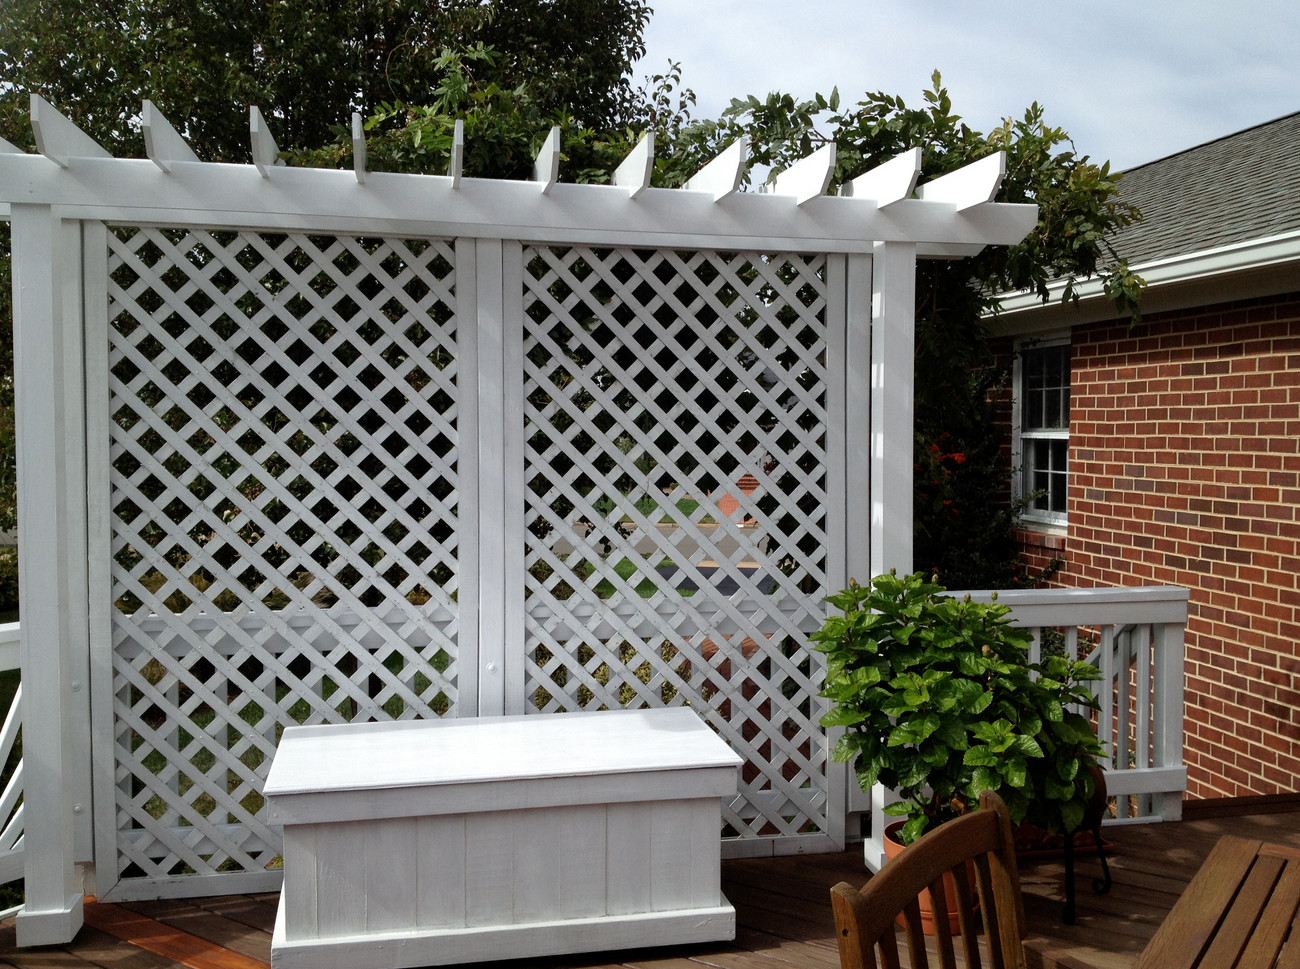 Lattice privacy screen for deck interesting ideas for home for Lattice panel privacy screen